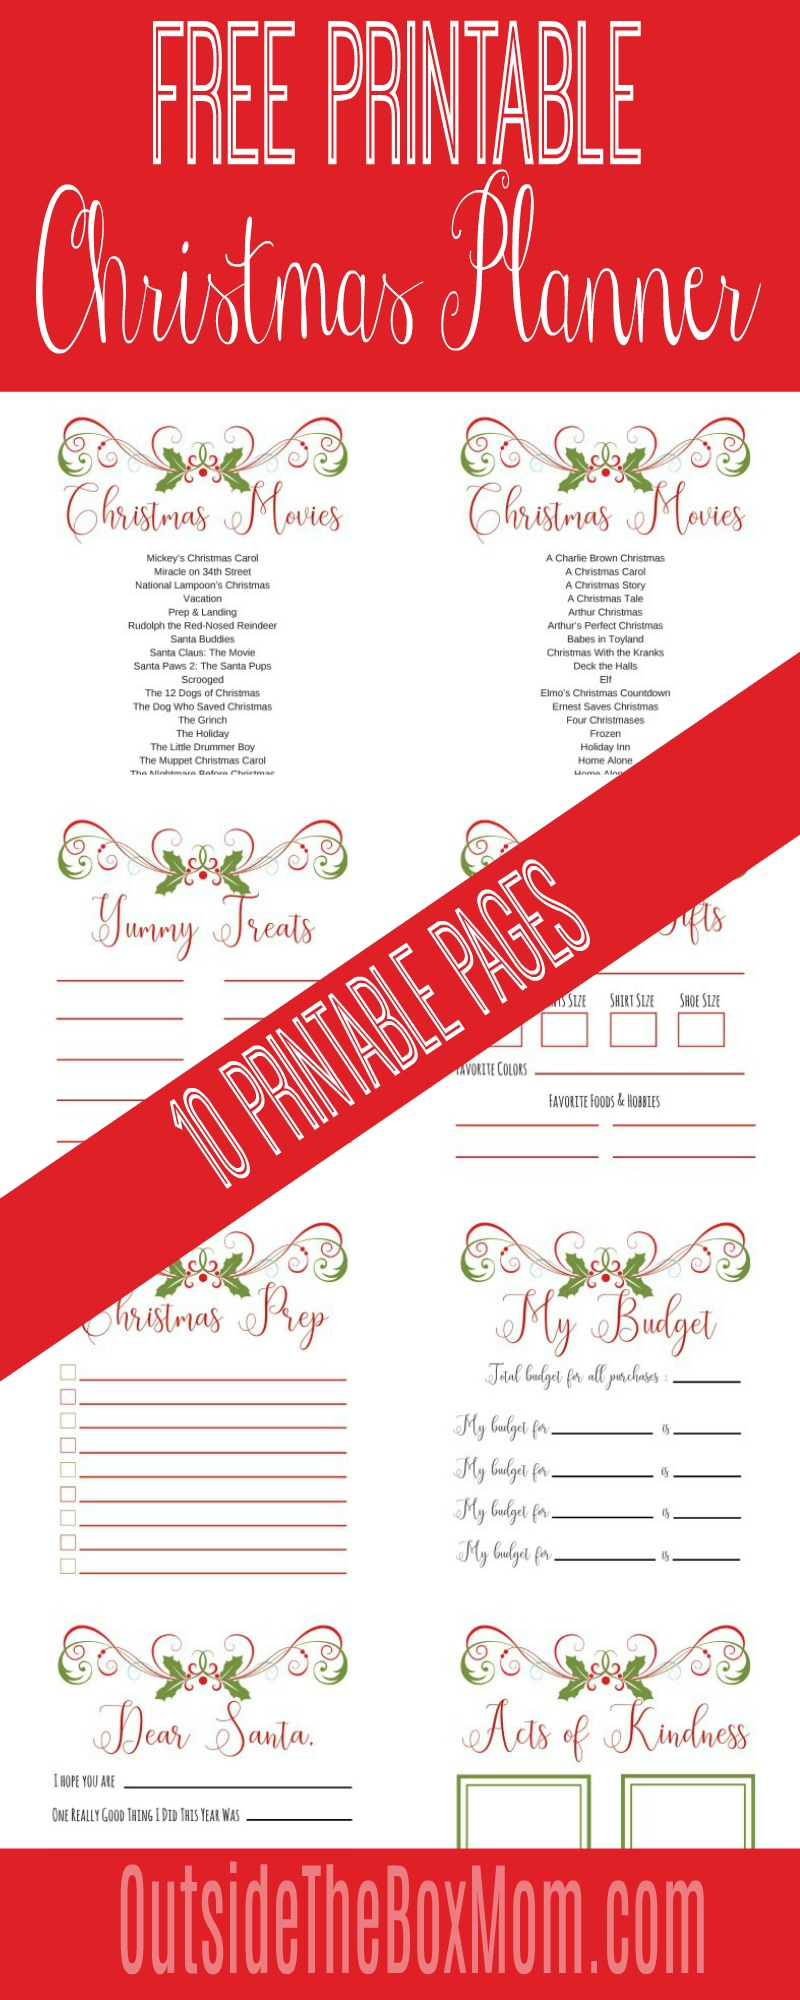 Christmas Planner Printables Free.The Ultimate Christmas Planner Working Mom Blog Outside